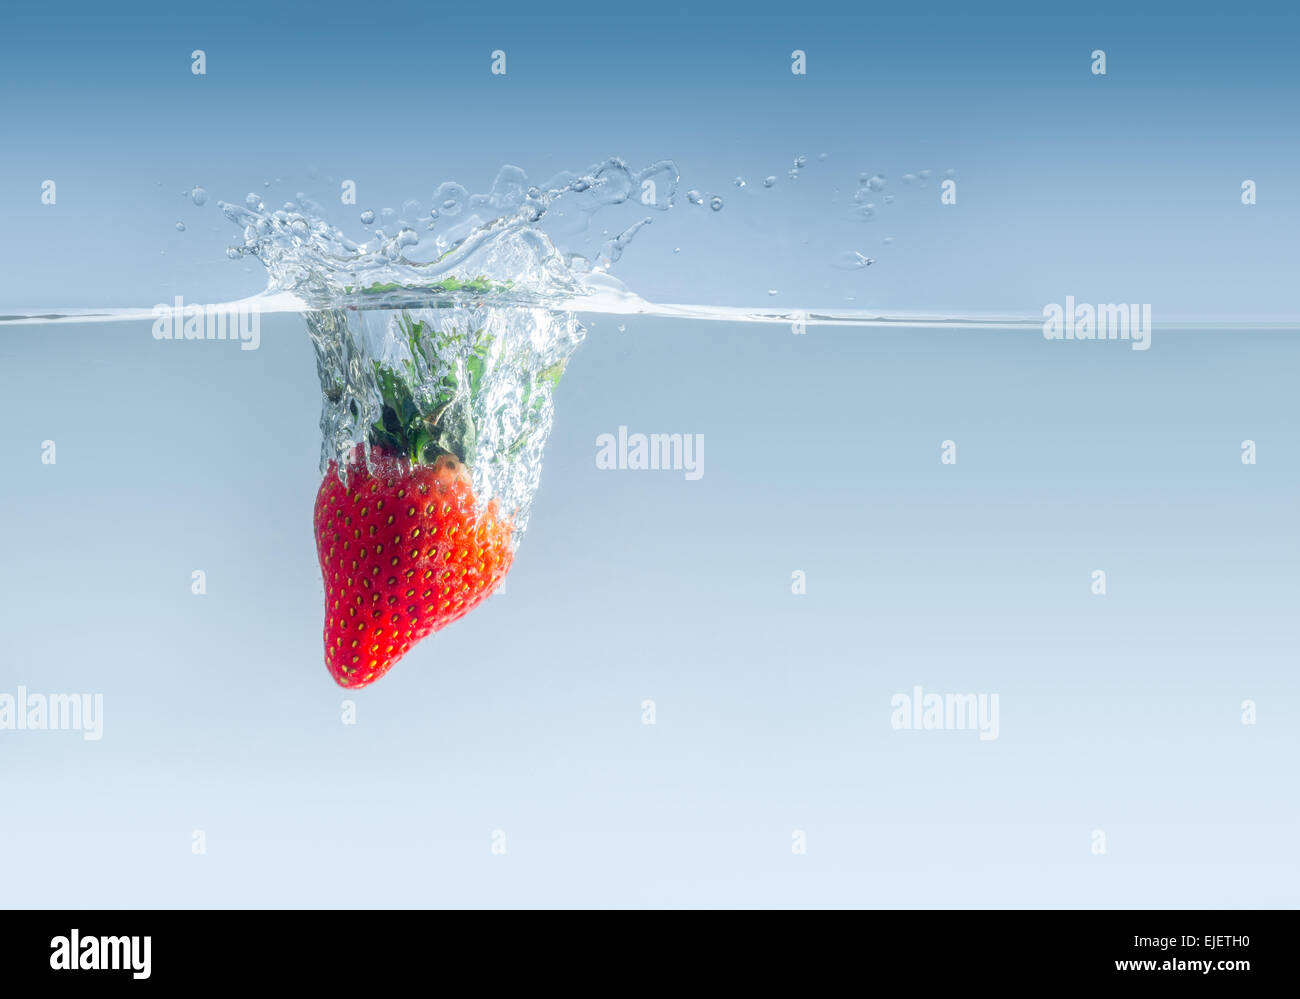 Strawberry in water - Stock Image